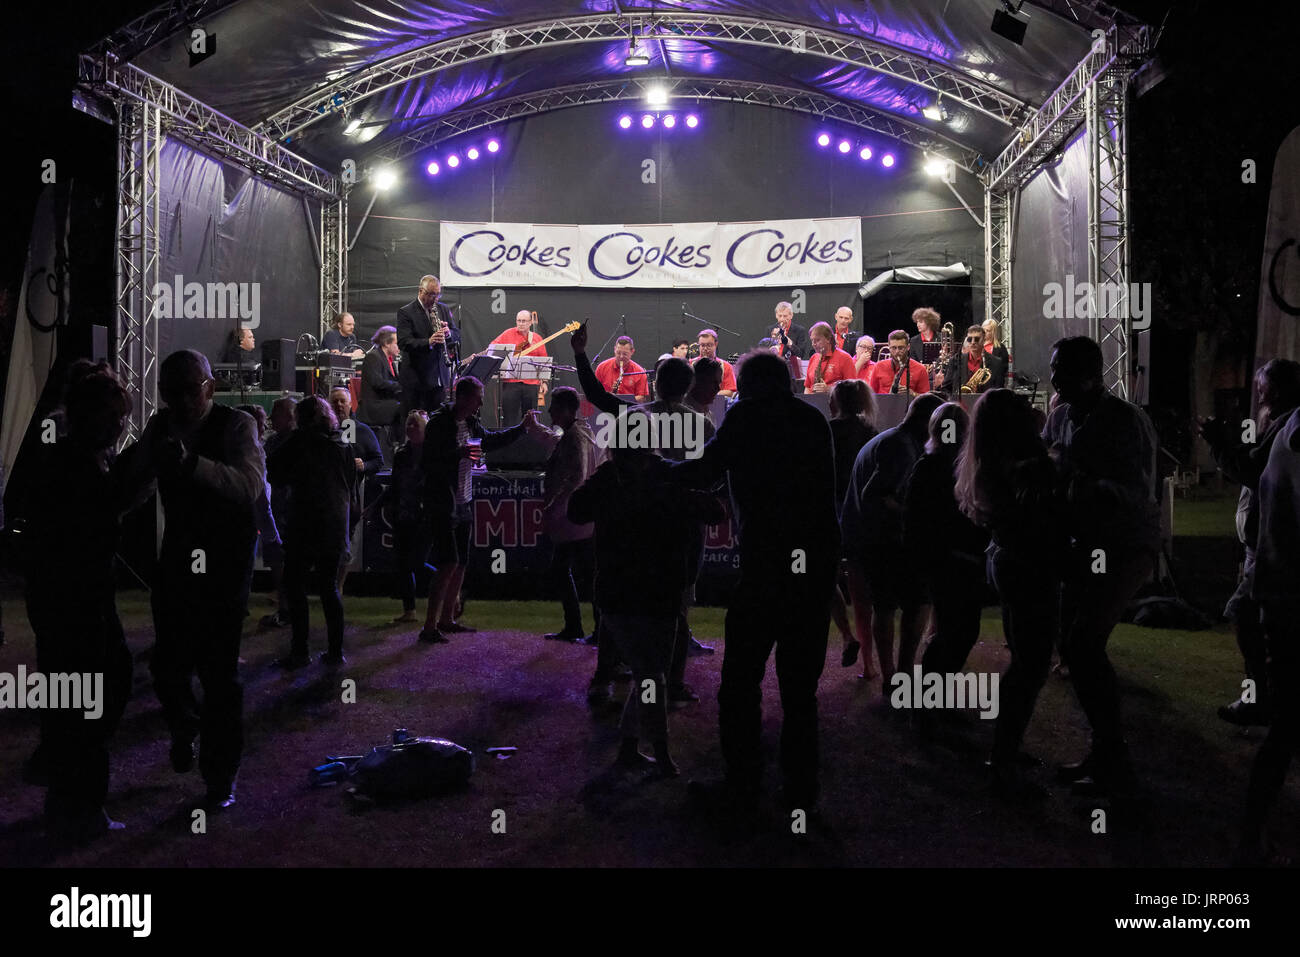 Christchurch, UK. 05th Aug, 2017. Large crowds attend the 23rd annual free jazz festival. The Taverners Big Band end the day with swing music getting the audience dancing. Credit: Roger Allen Photography/Alamy Live News - Stock Image